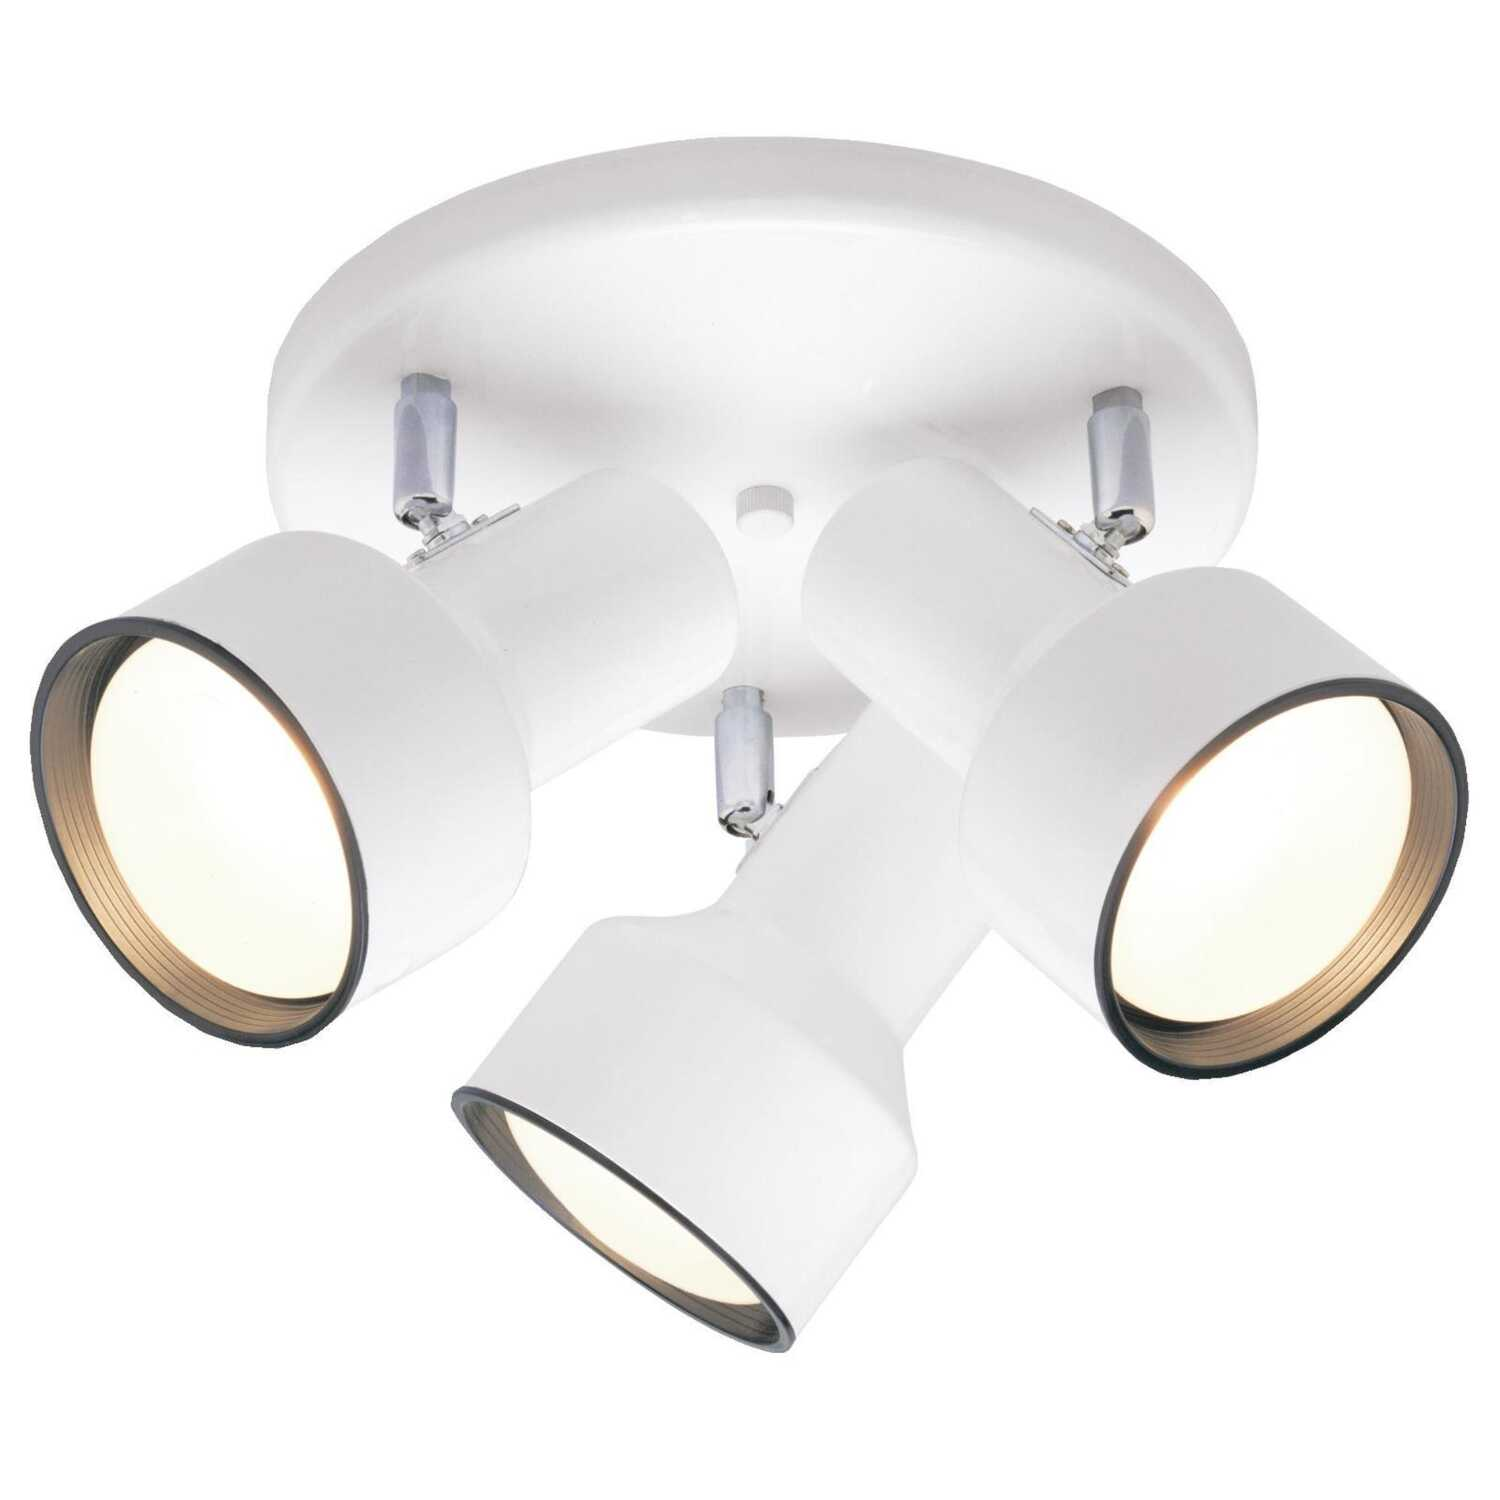 Westinghouse  8-1/4 in. H x 10-3/16 in. L x 10-1/8 in. W Ceiling Light